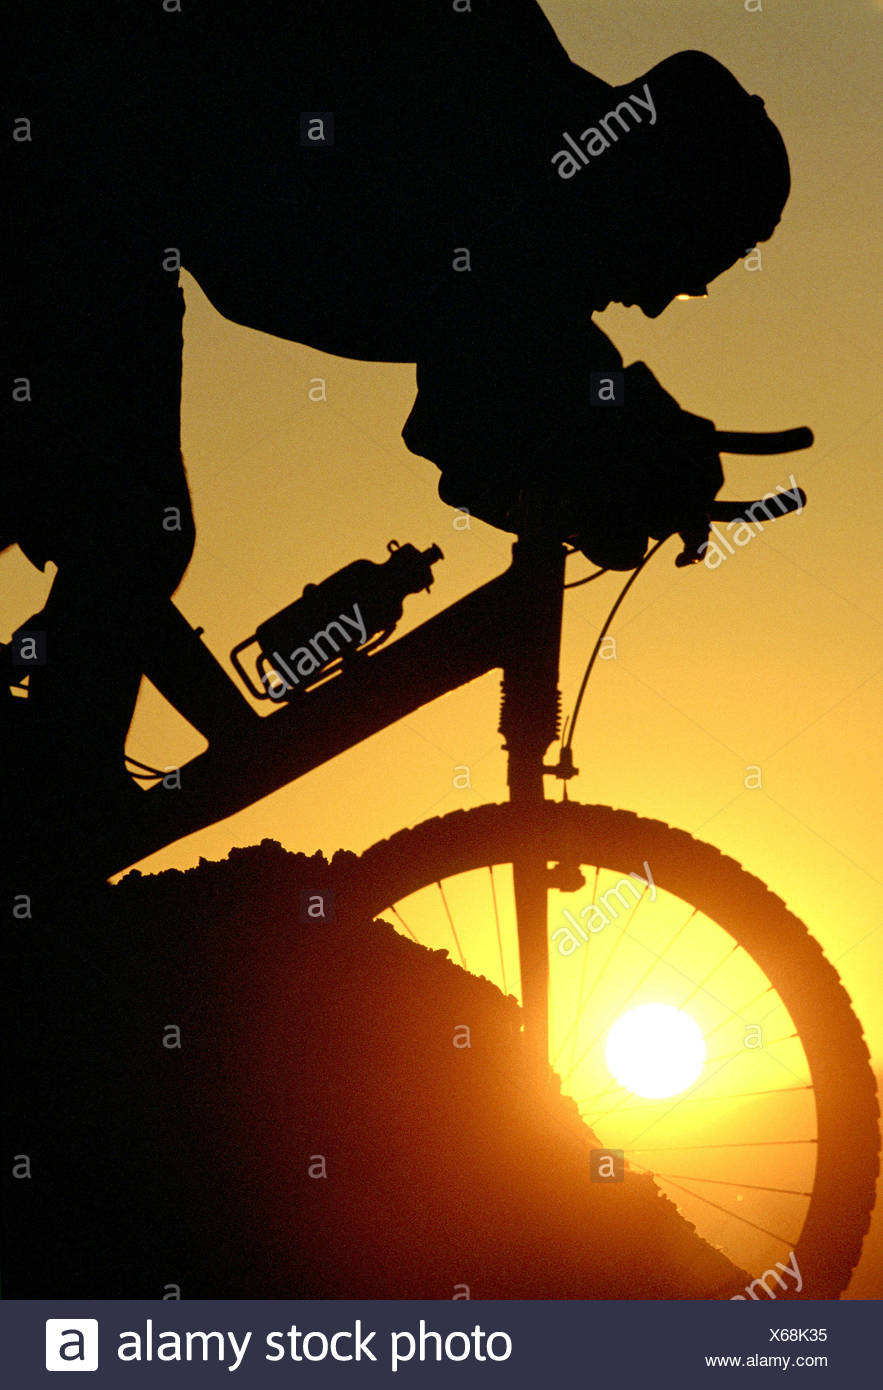 Silhouette de personne vtt Photo Stock